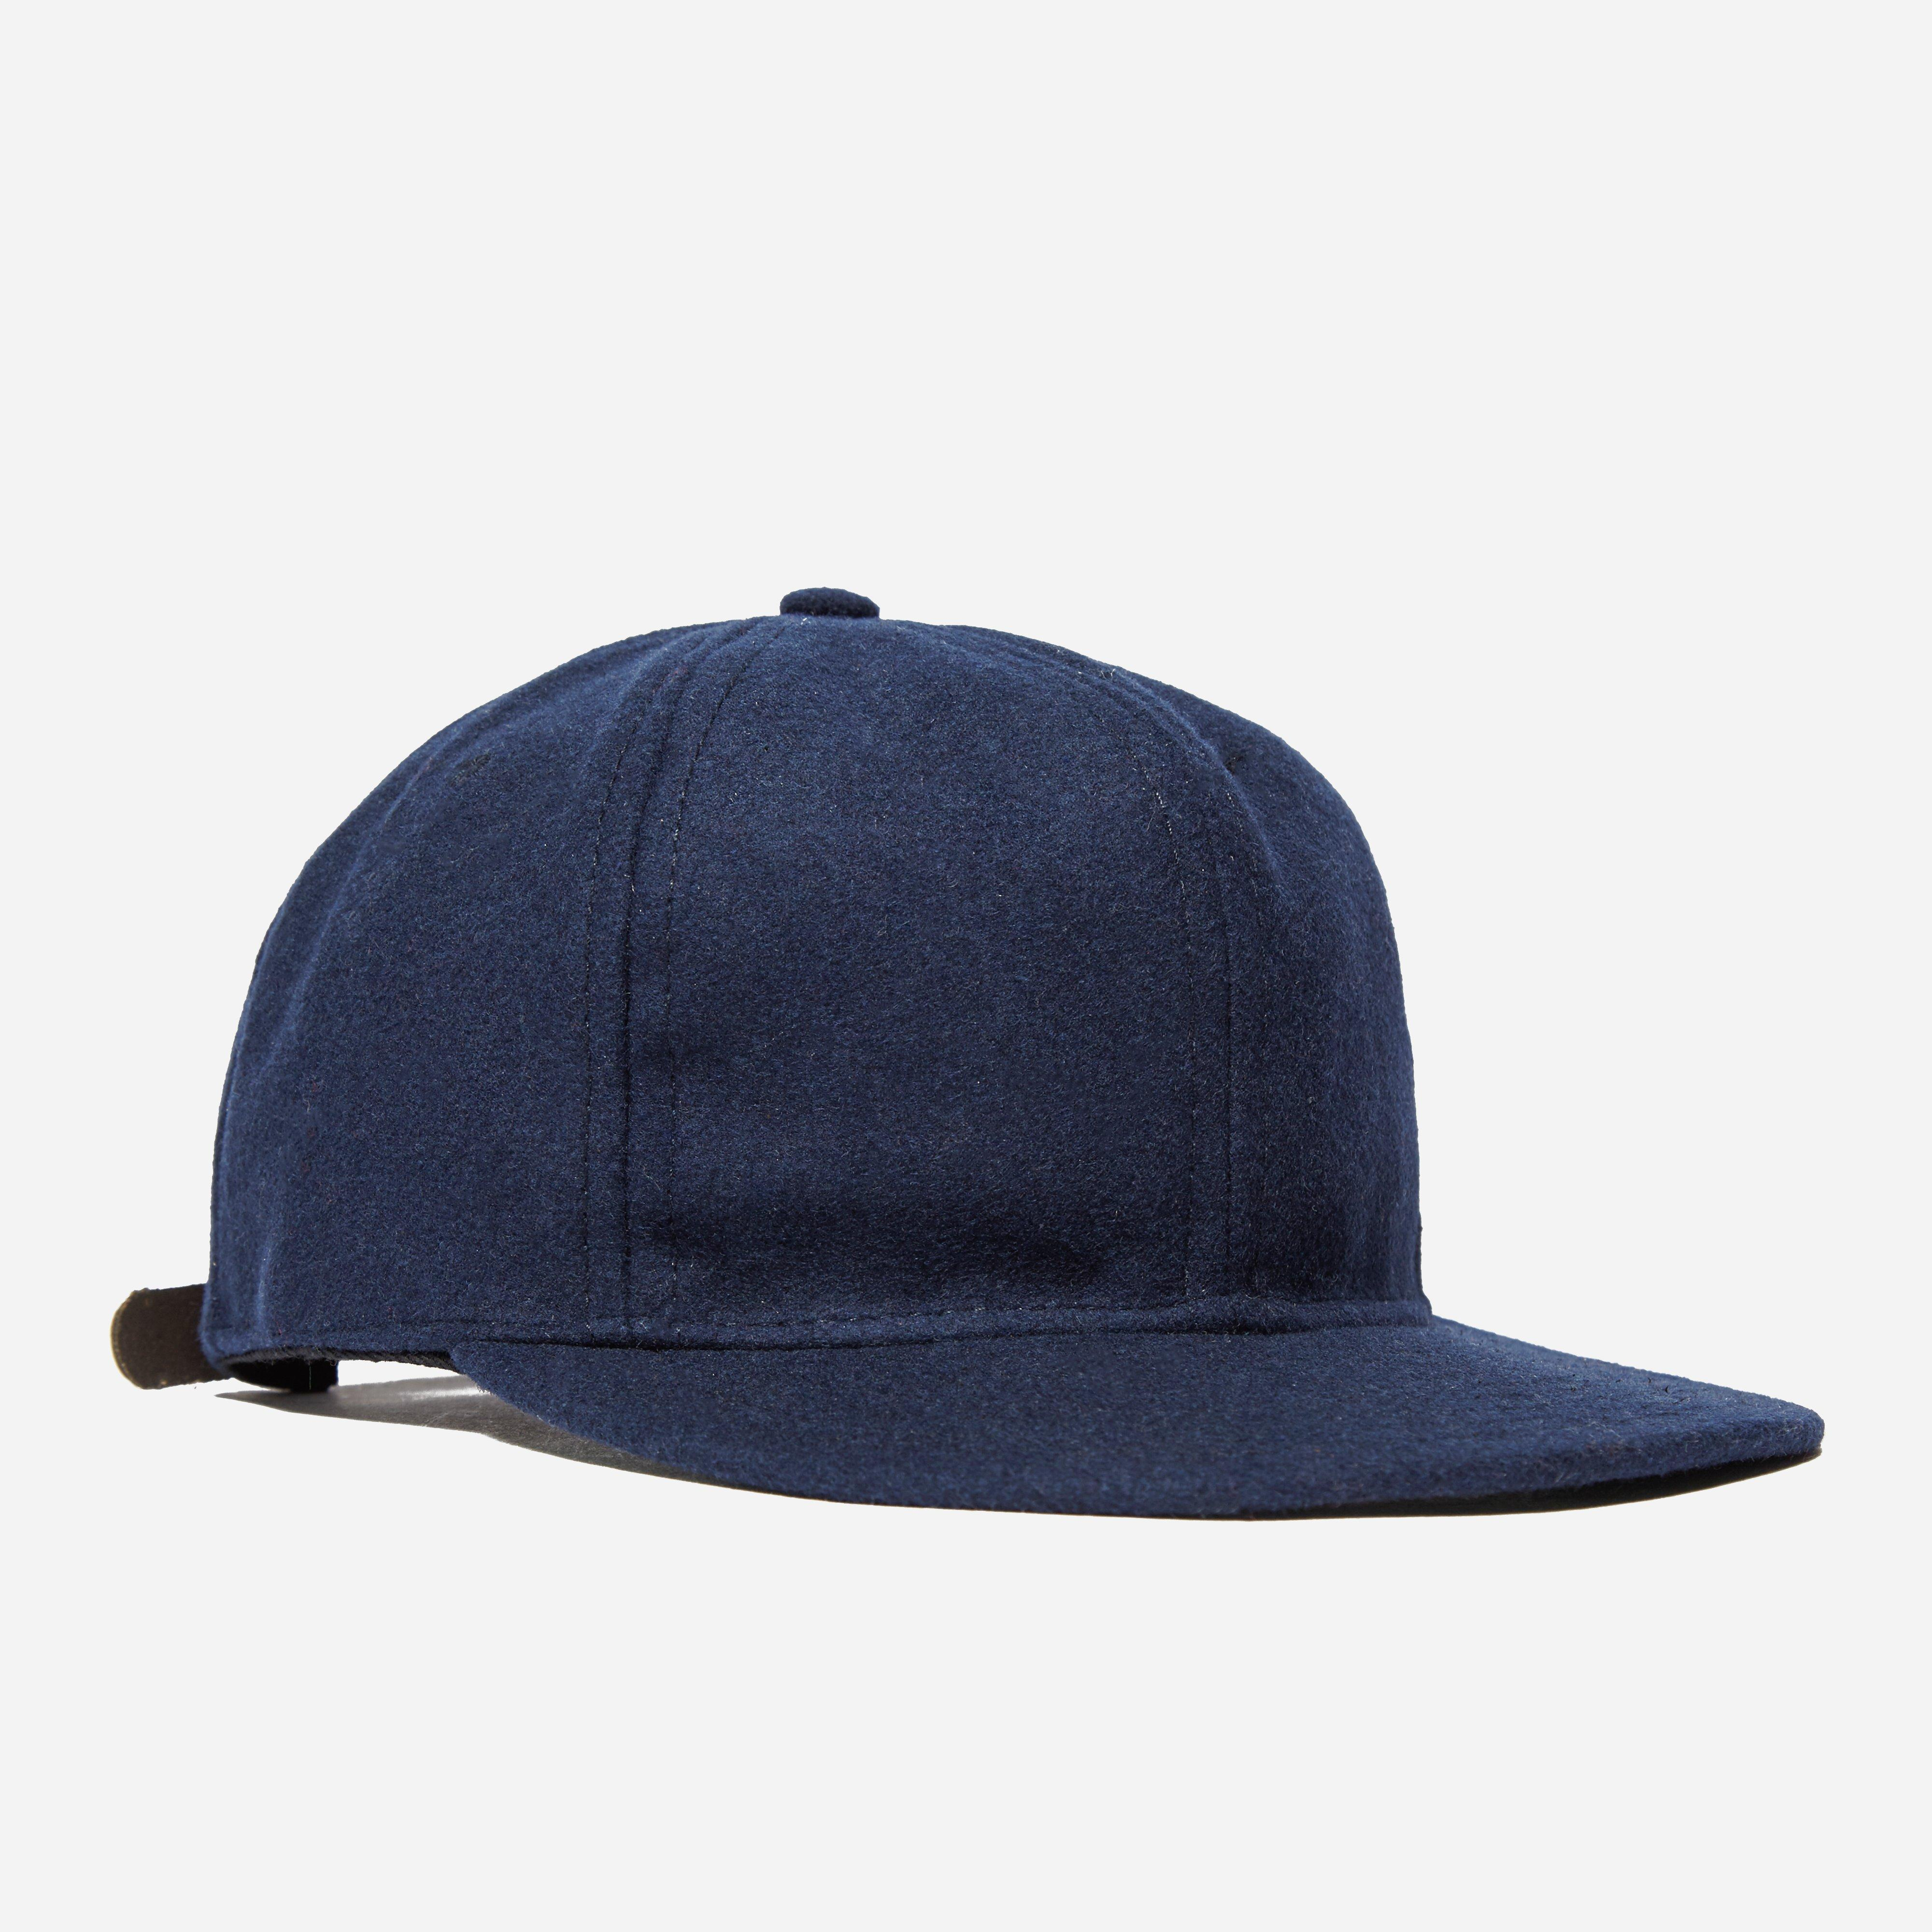 Ebbets Wool 6 Panel Cap